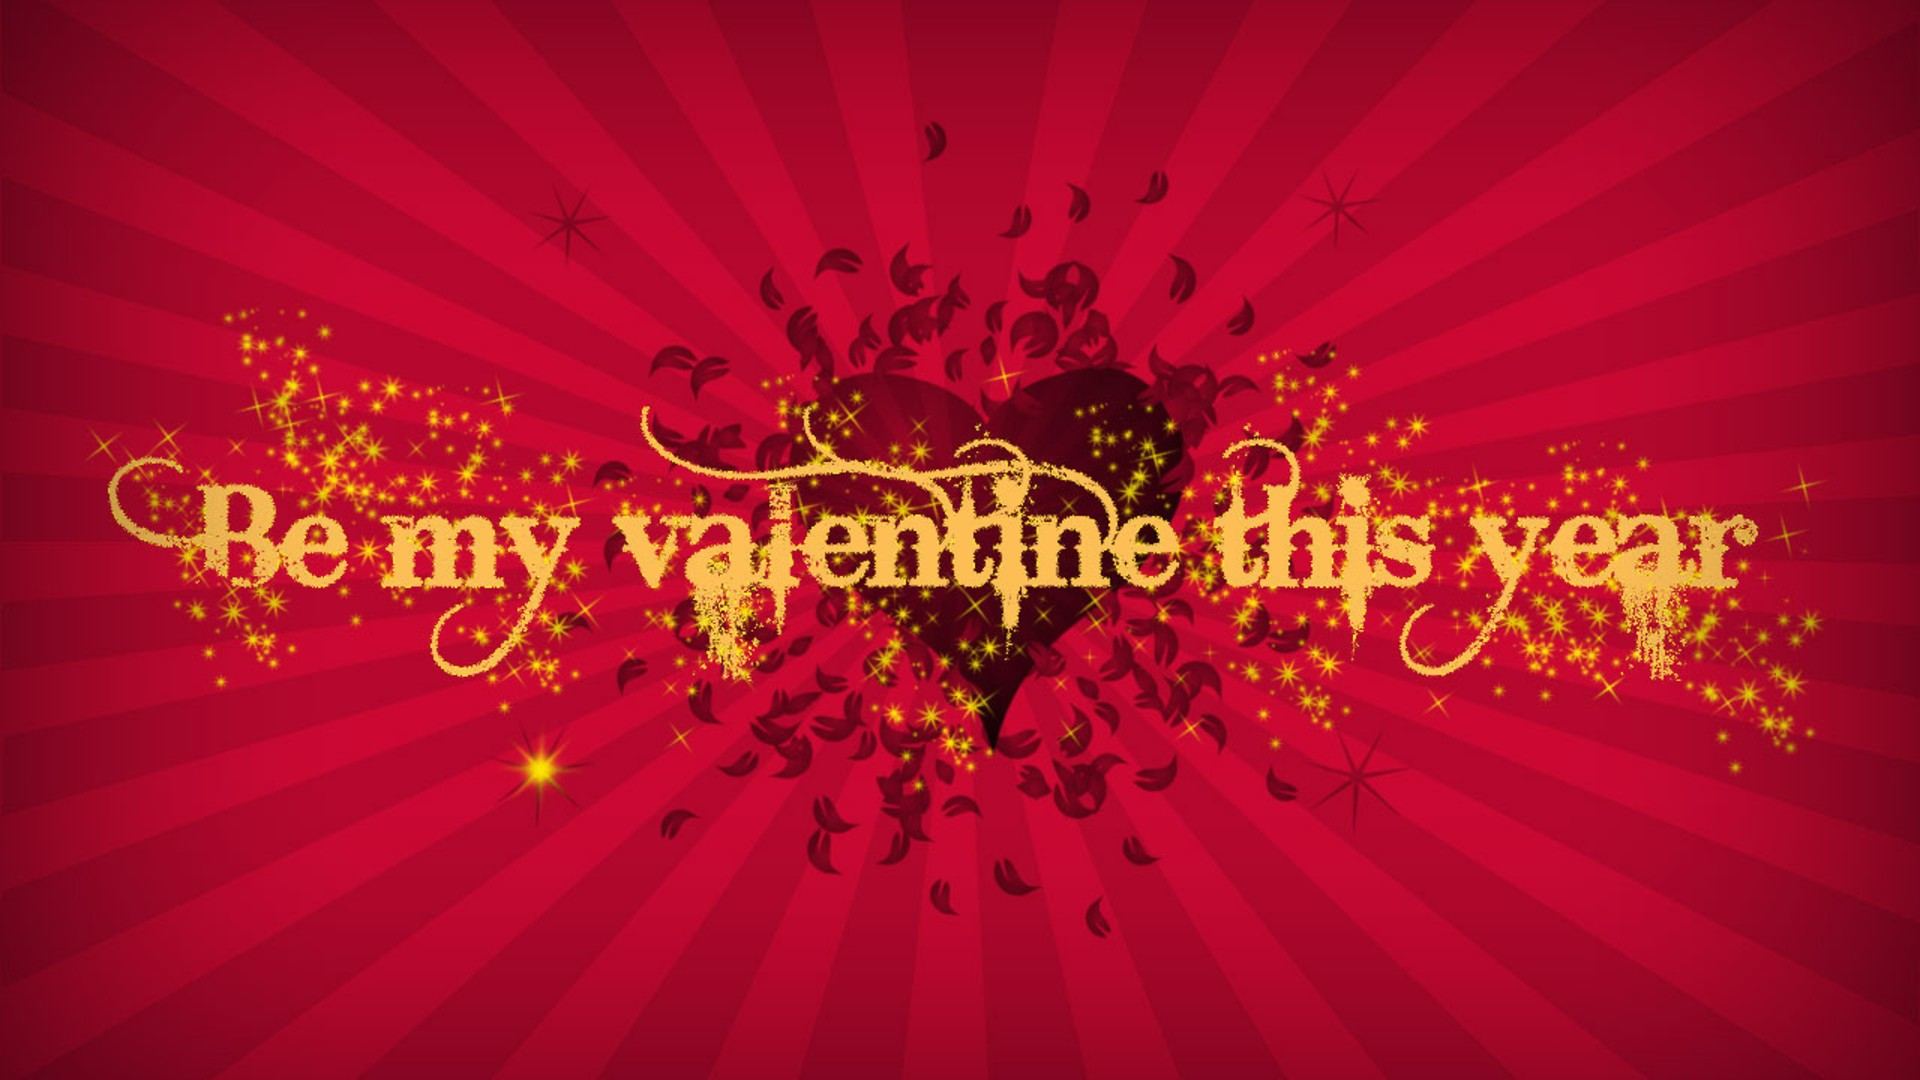 valentines day wallpaper free cool hd desktop